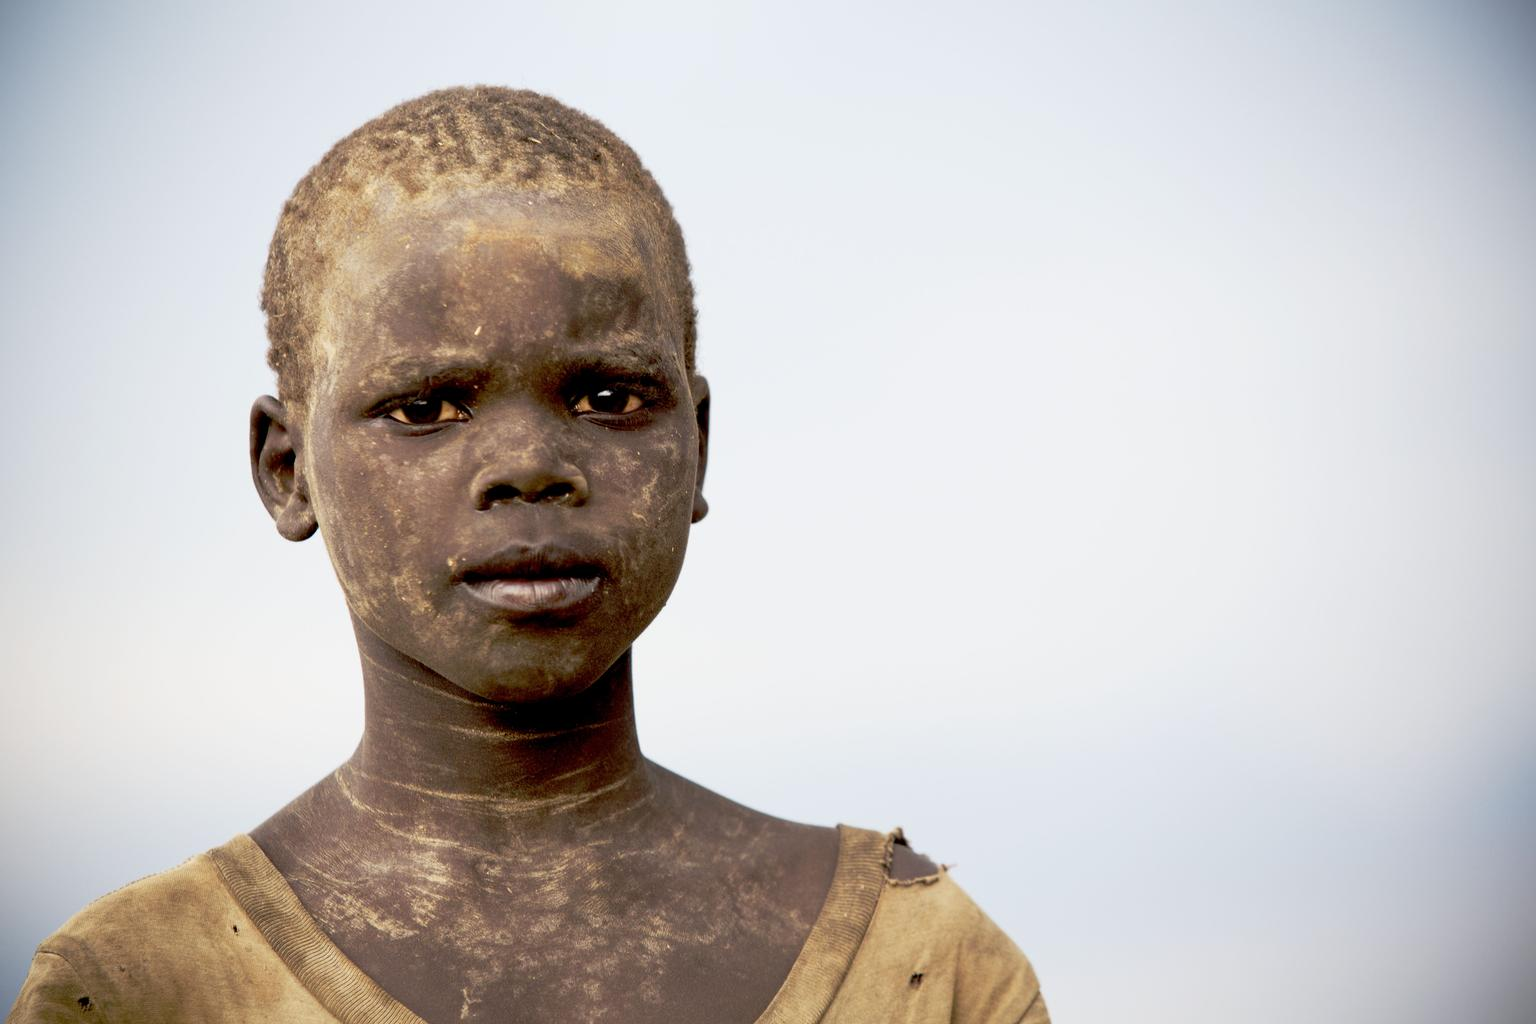 Mathiang, 10, stands at a food distribution site in the town of Mingkaman, South Sudan.